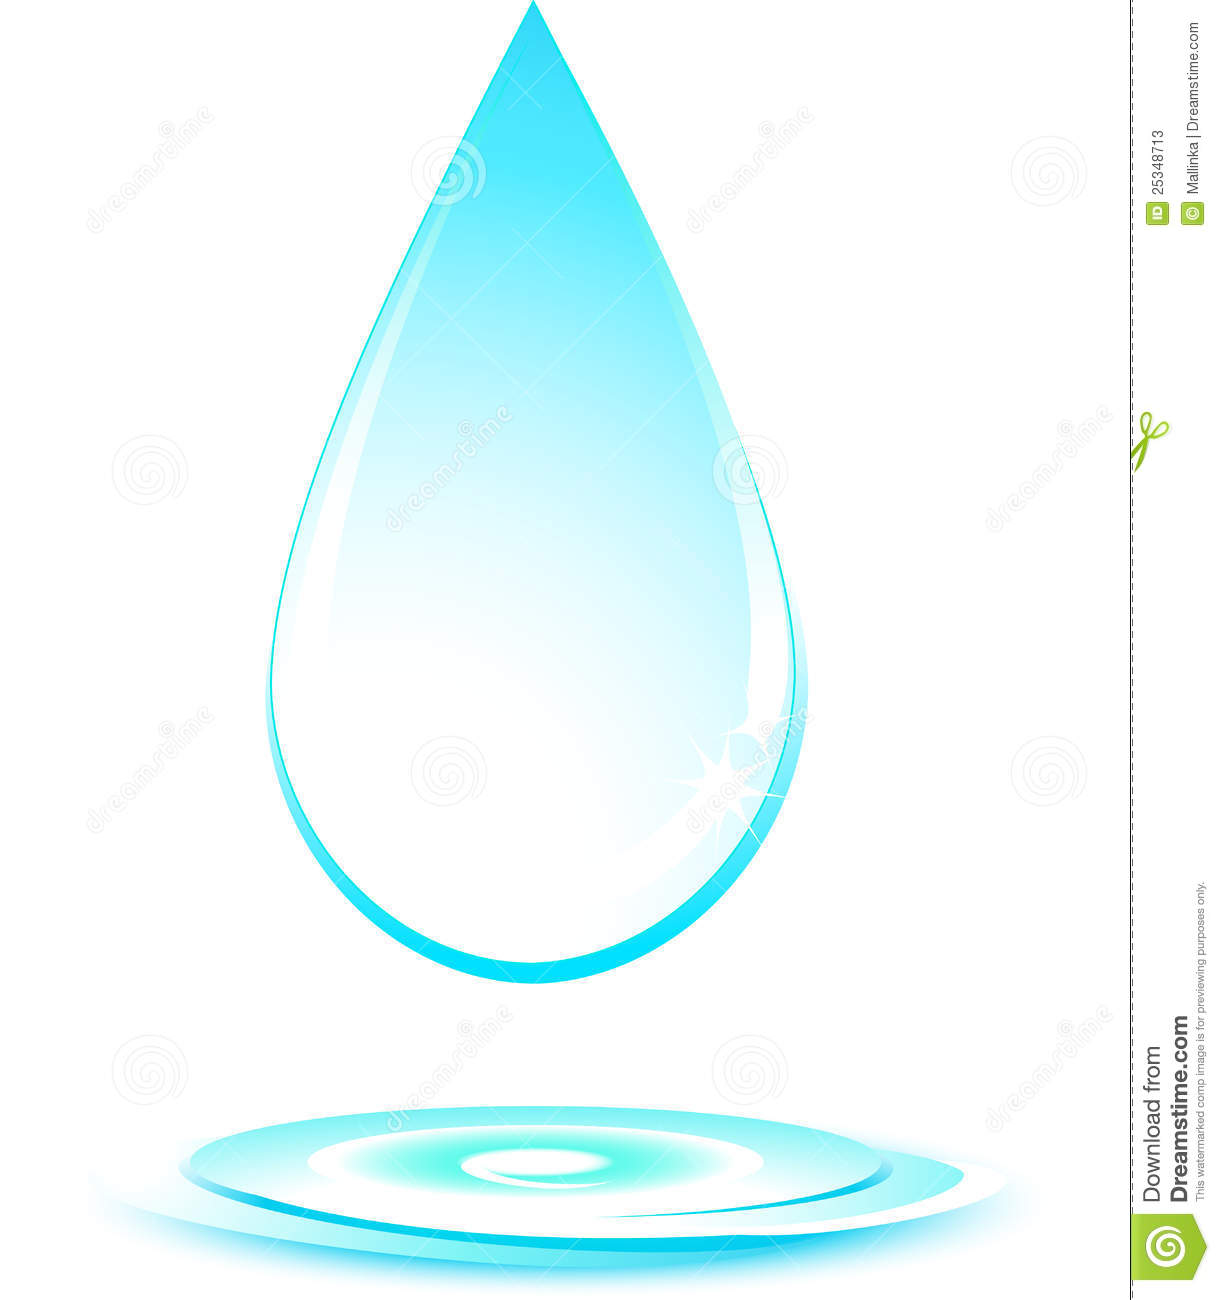 Water Drop On White Background Stock Photos - Image: 25348713